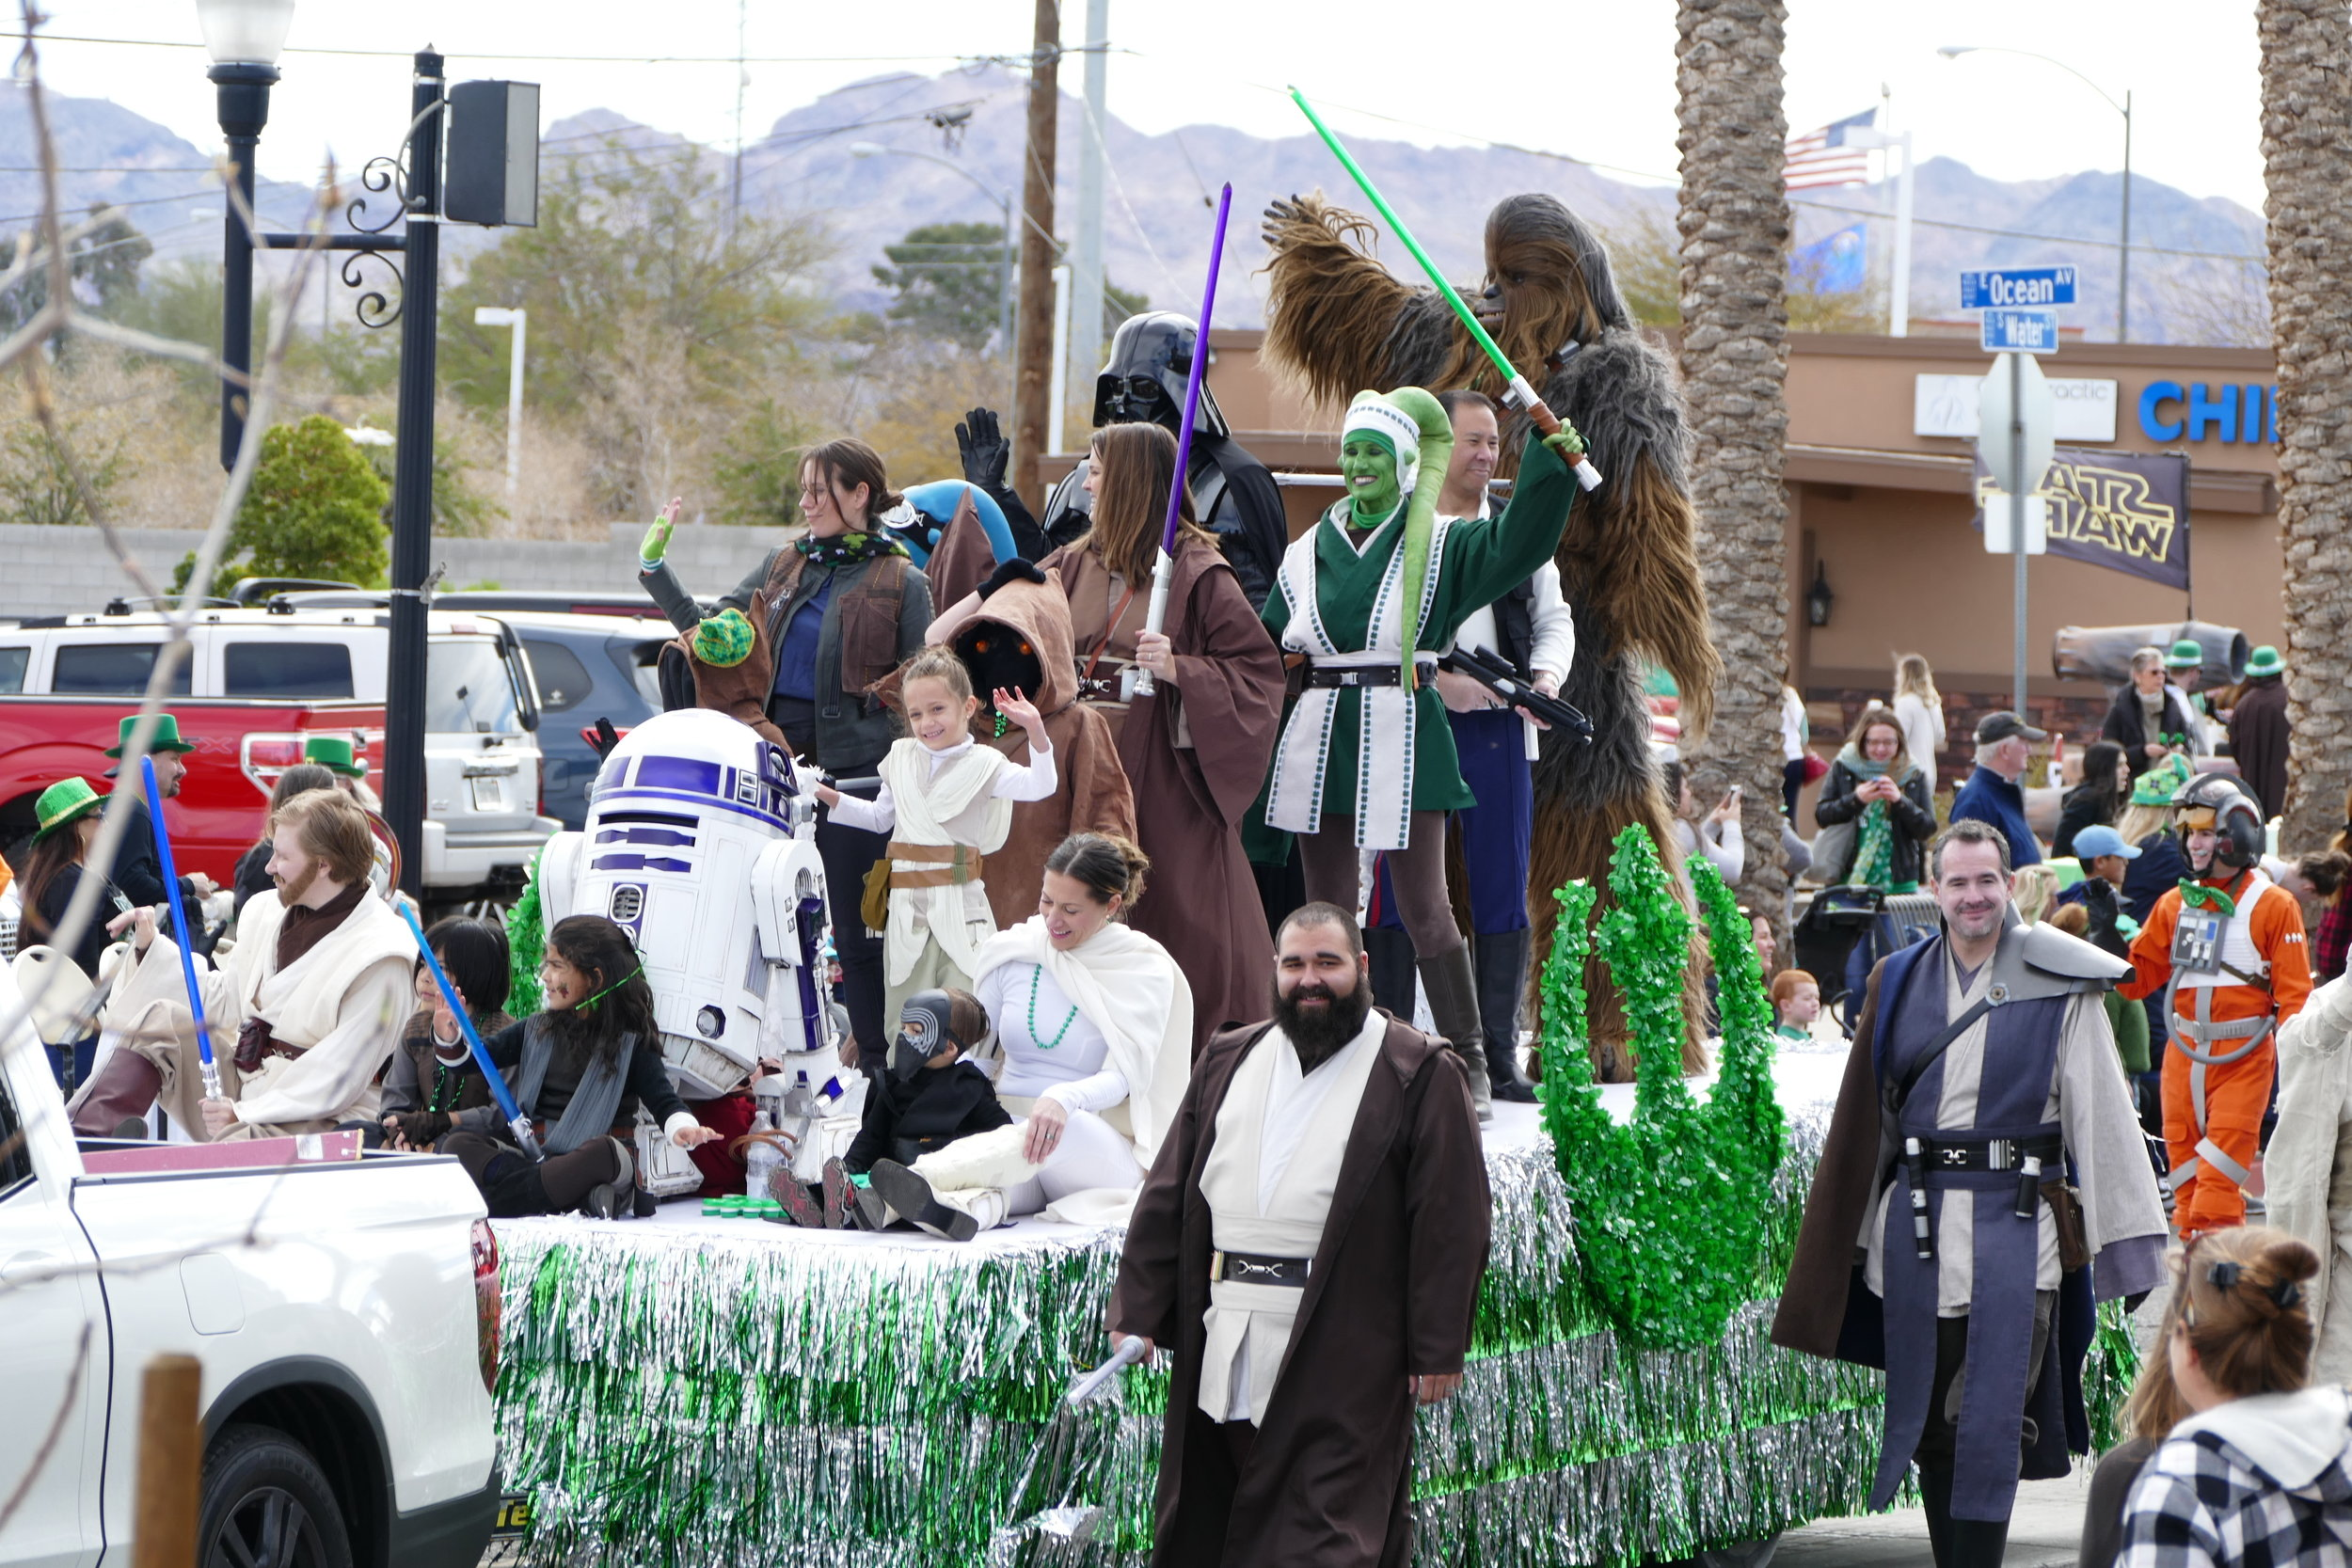 """Nothing says """"St.Patrick's Day"""" like Star Wars characters!"""